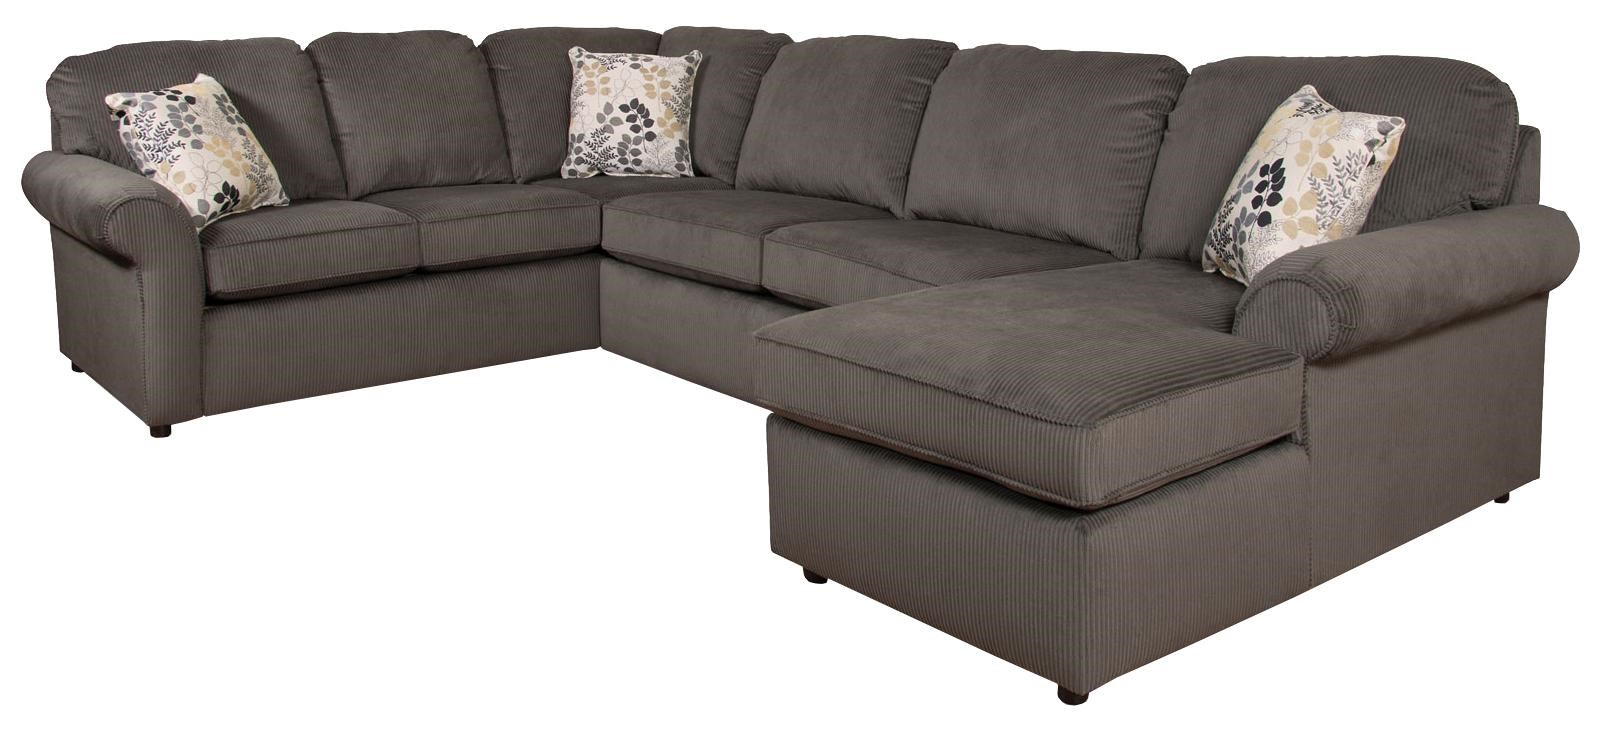 Colders Furniture Store England Malibu 5-6 Seat (right side) Chaise Sectional Sofa ...